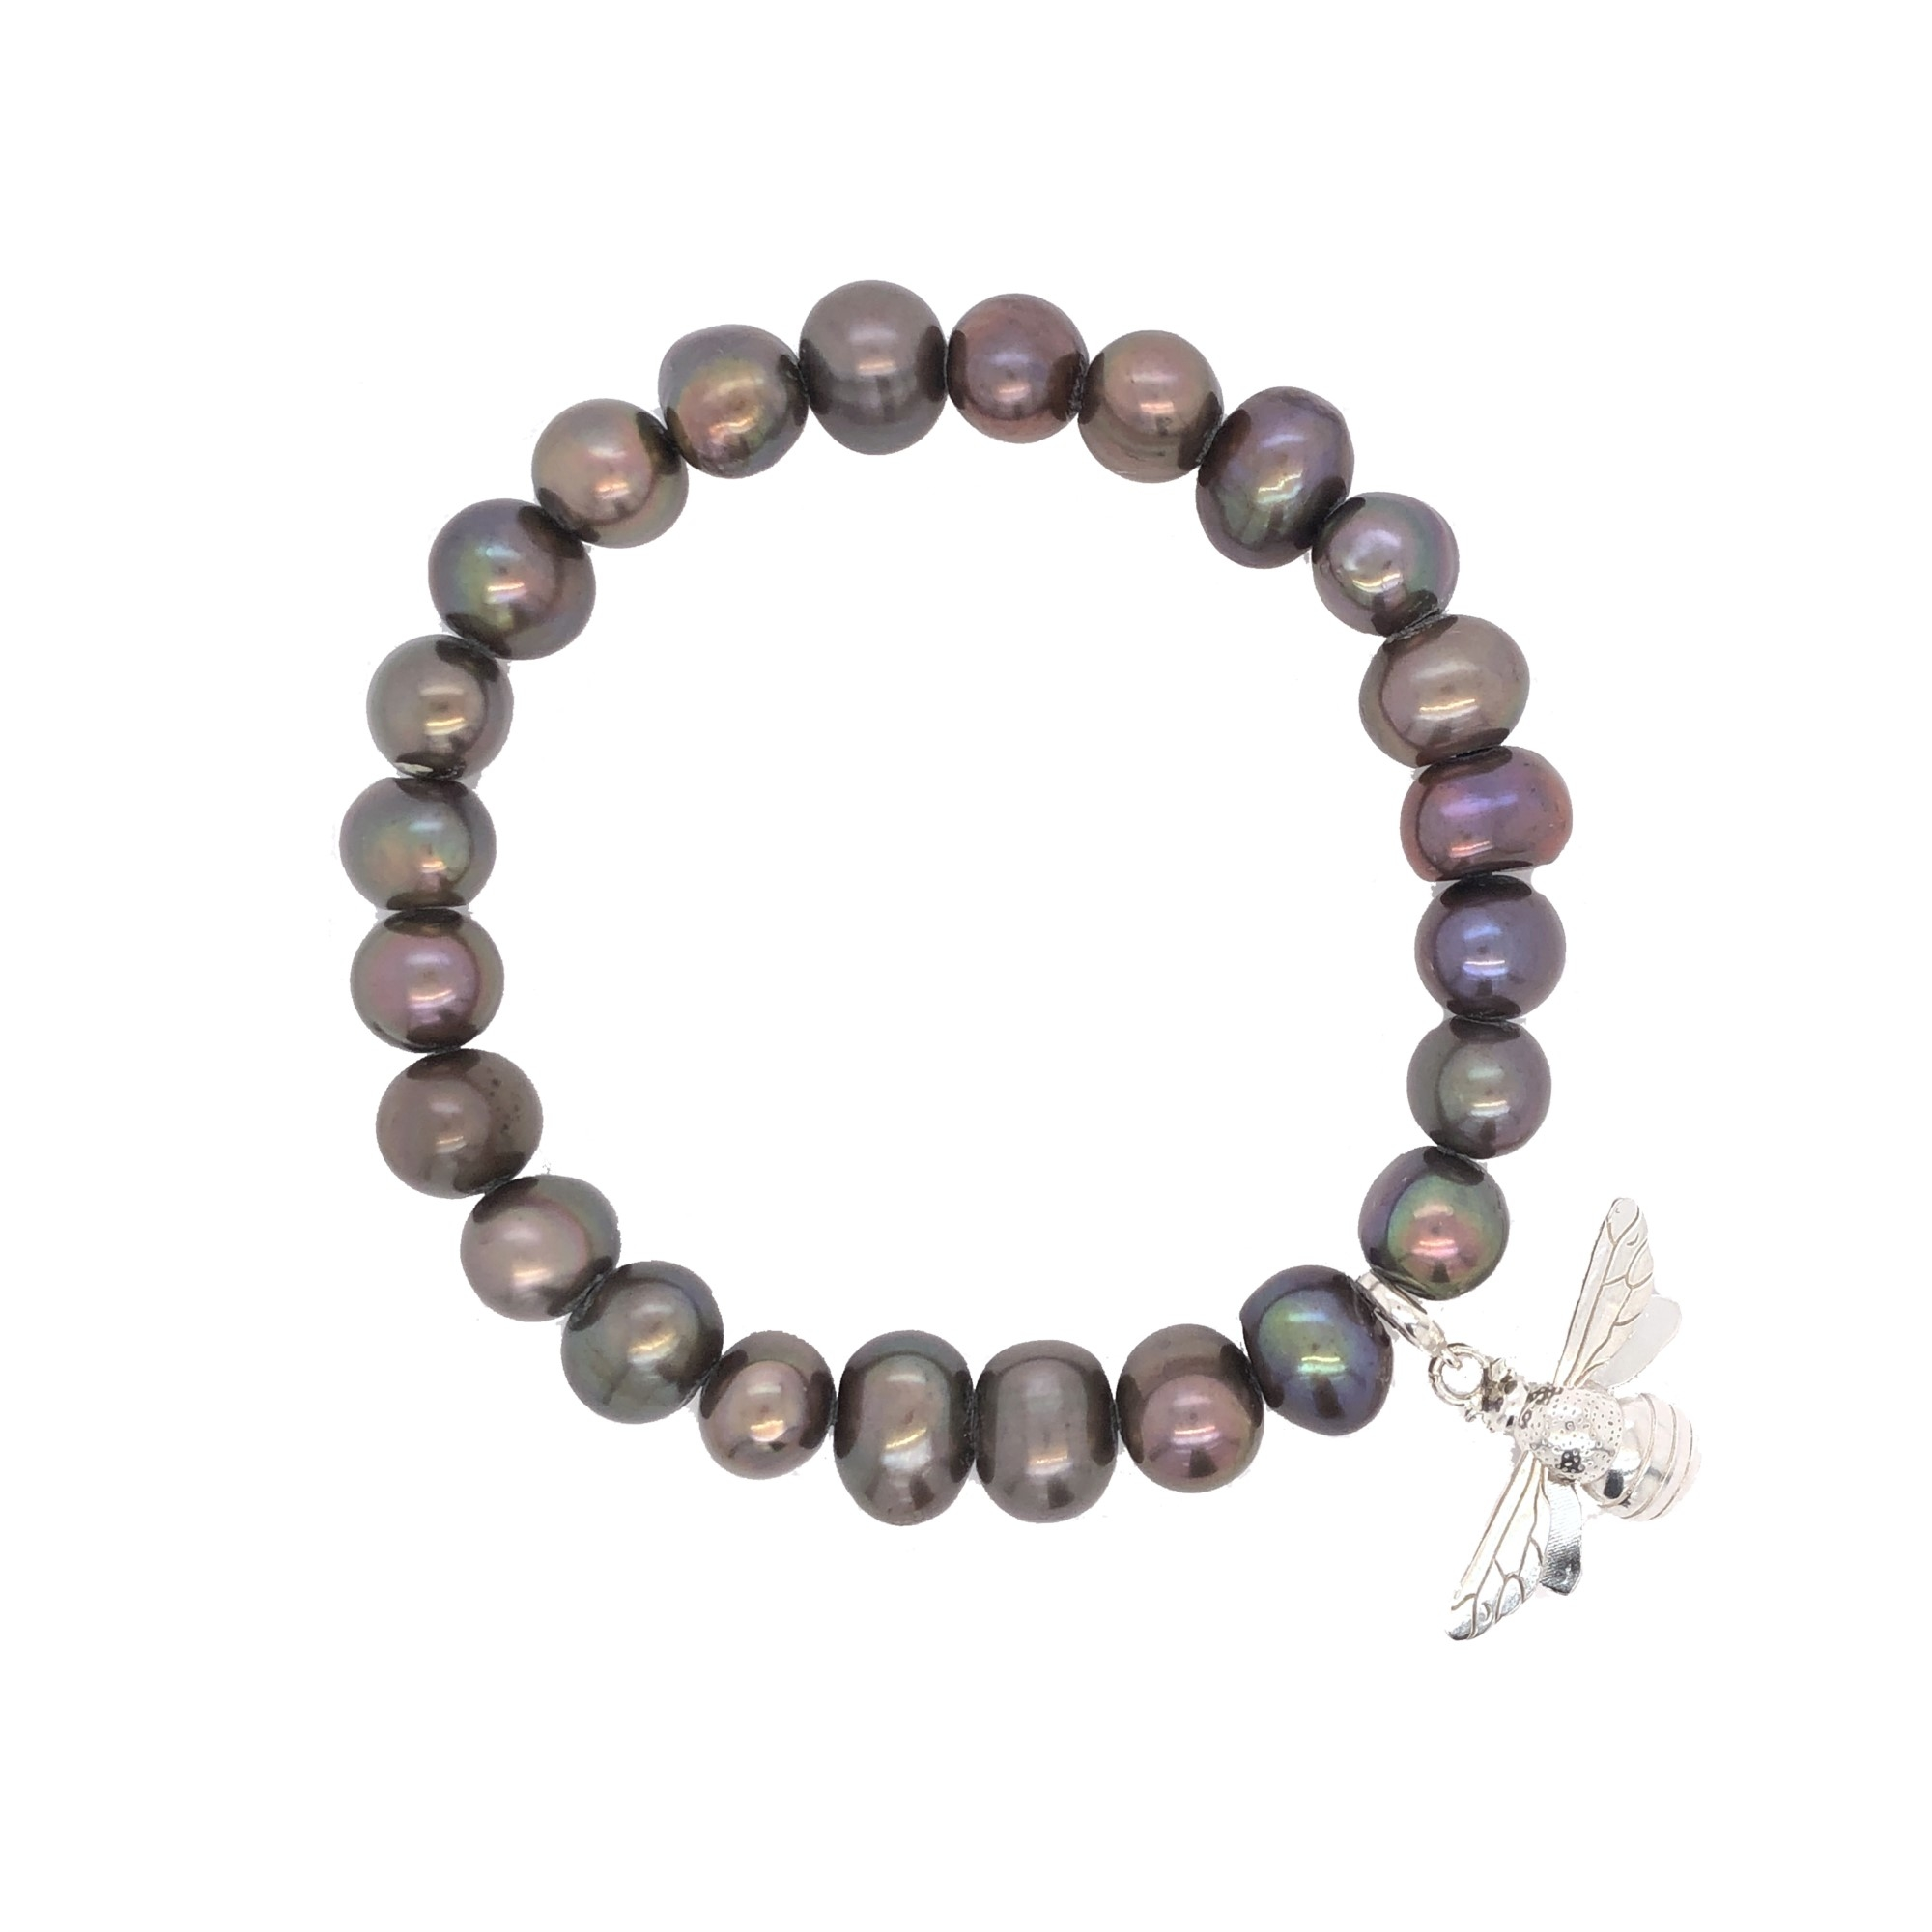 Carol Ferguson Jewelry  Sterling Silver   Pearl Silver Bracelet with Stones BSBB-SS-DYEDPEARL